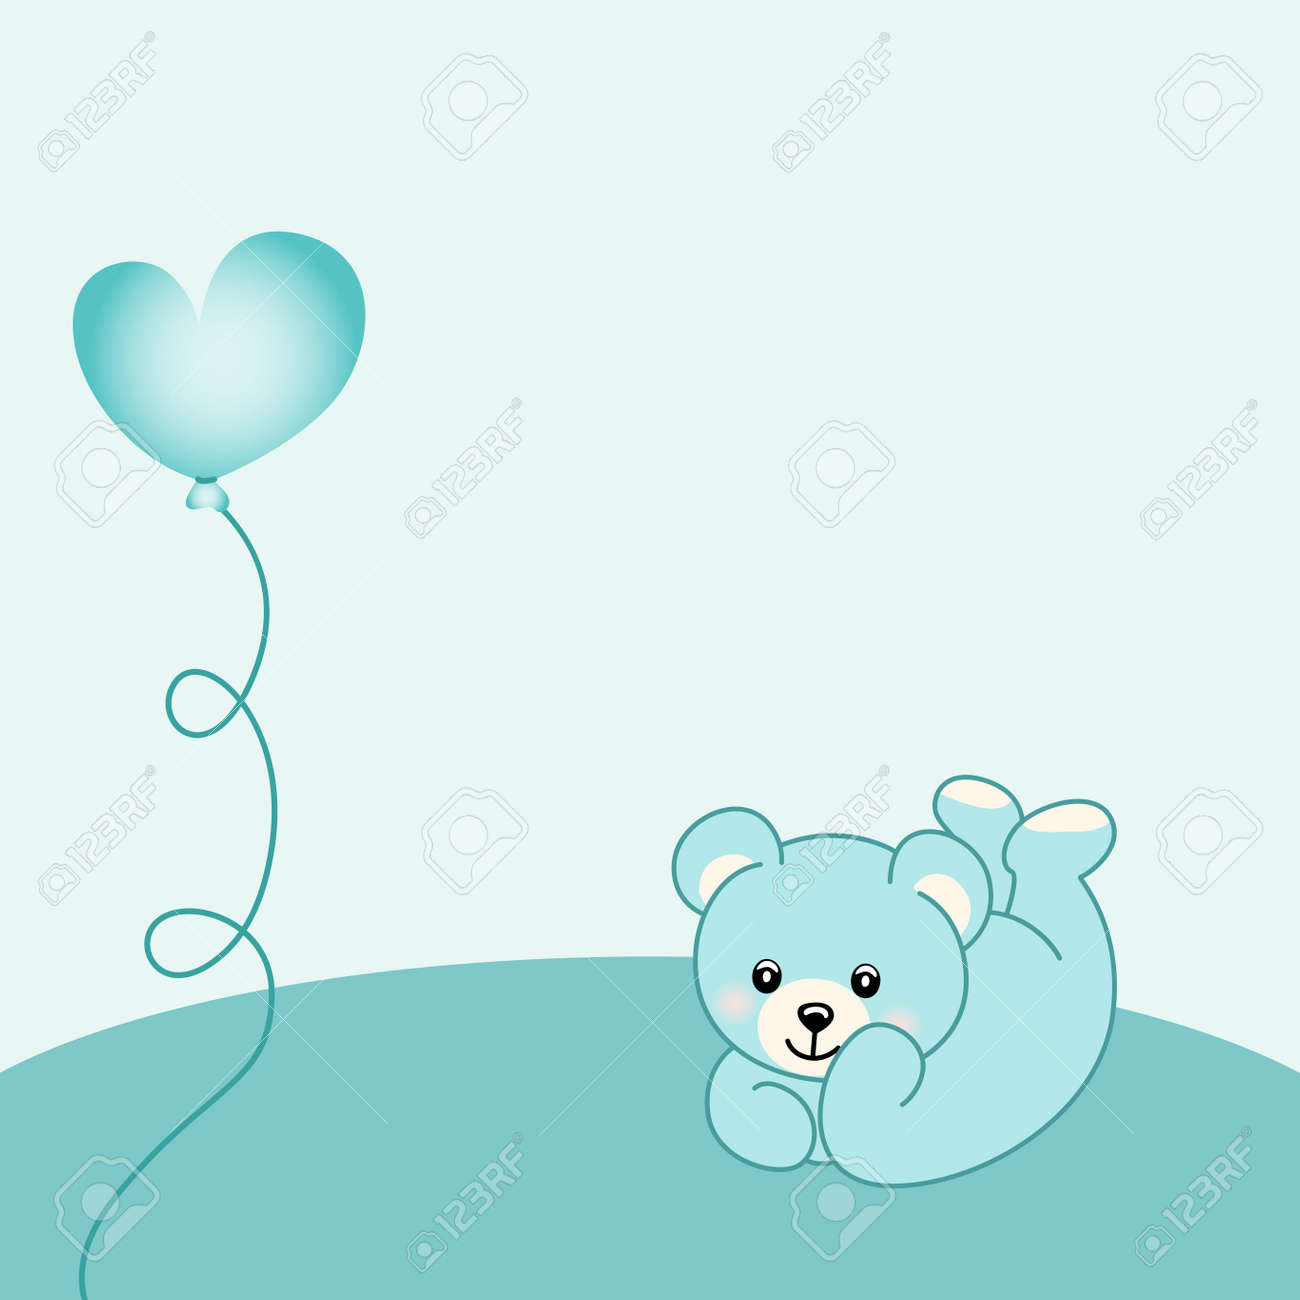 baby boy teddy bear background royalty free cliparts vectors and